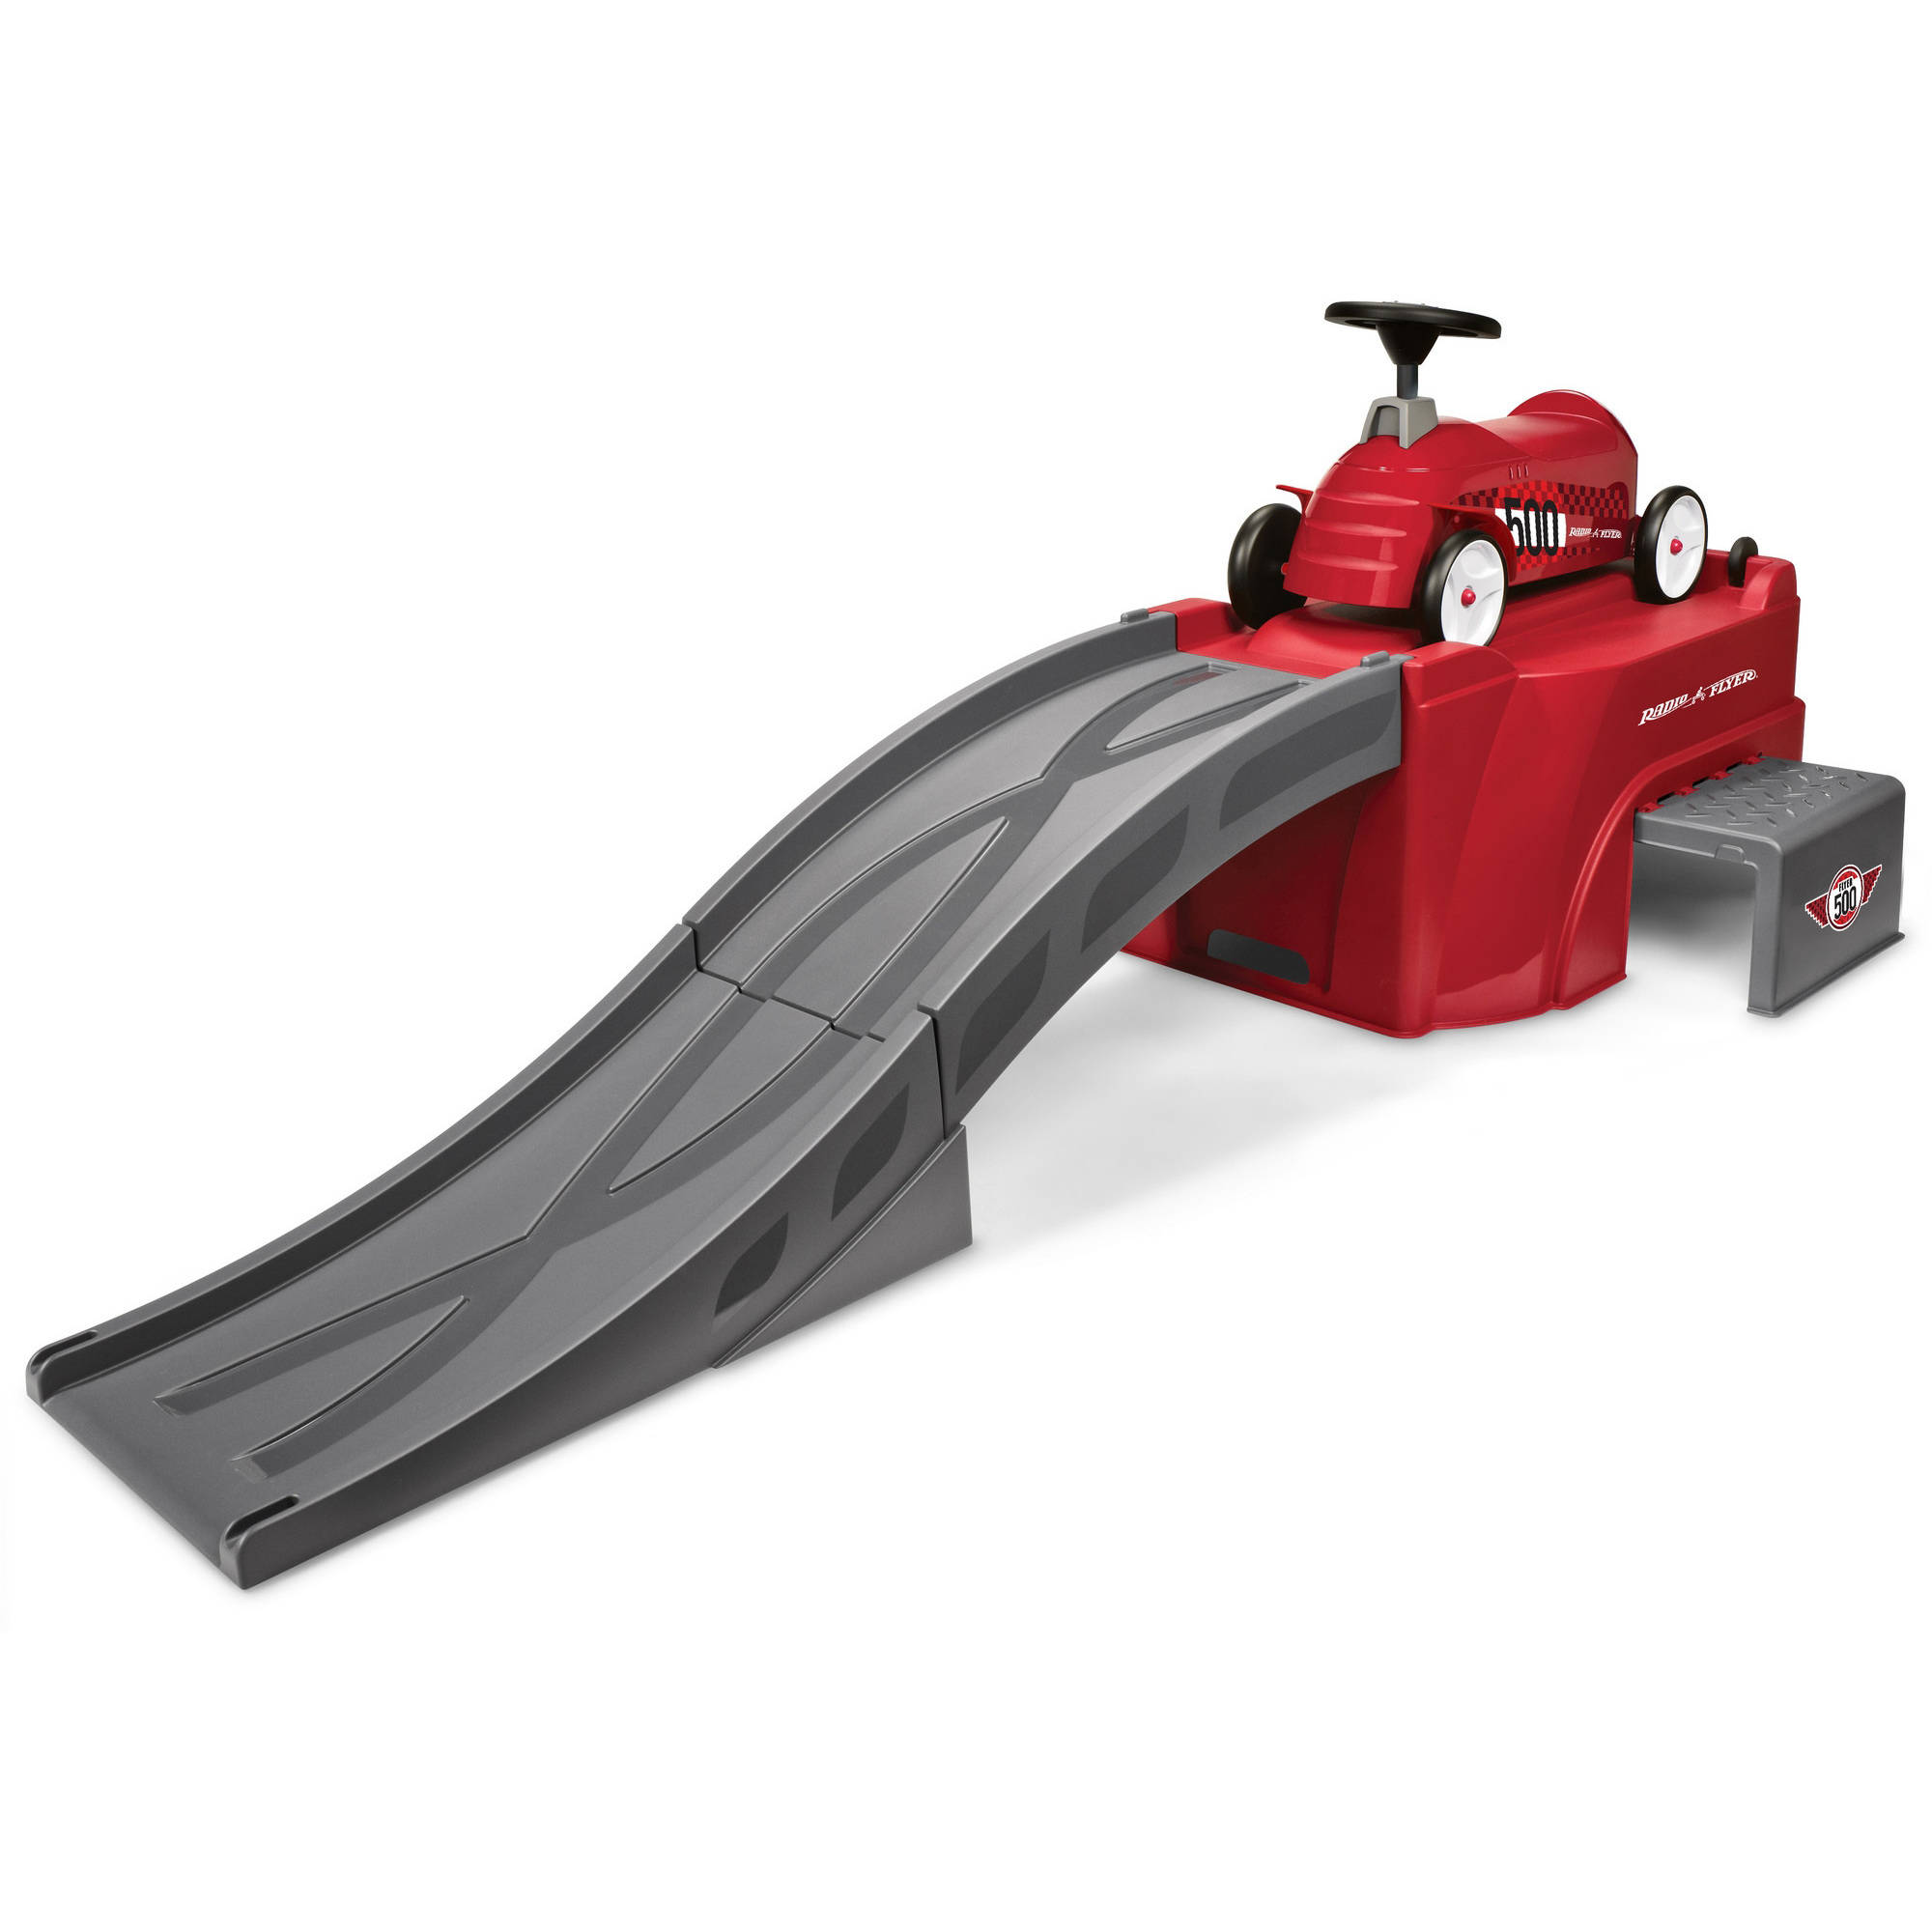 Radio Flyer 500 Ride-On with Ramp by Radio Flyer Inc.